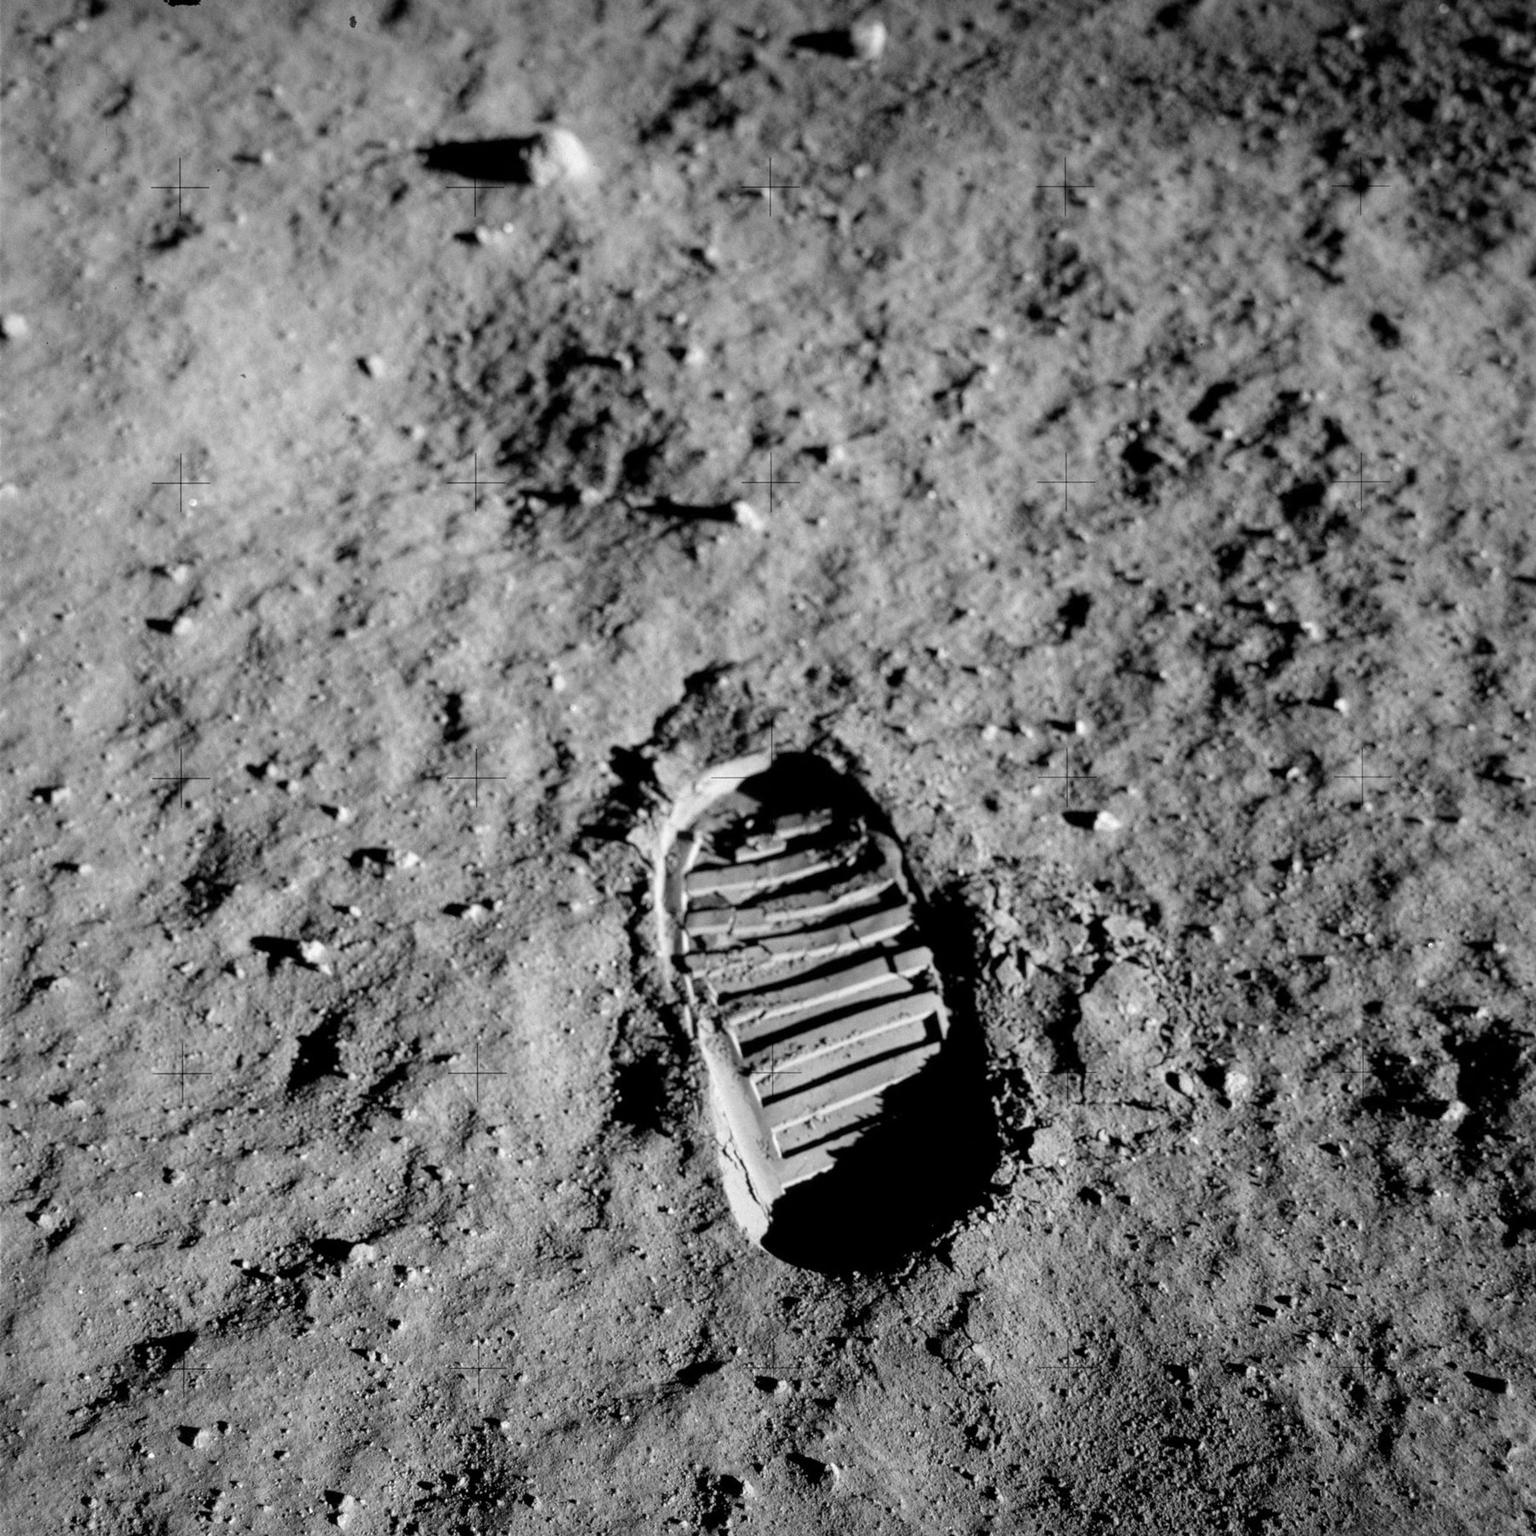 Buzz Aldrin's bootprint on the Moon